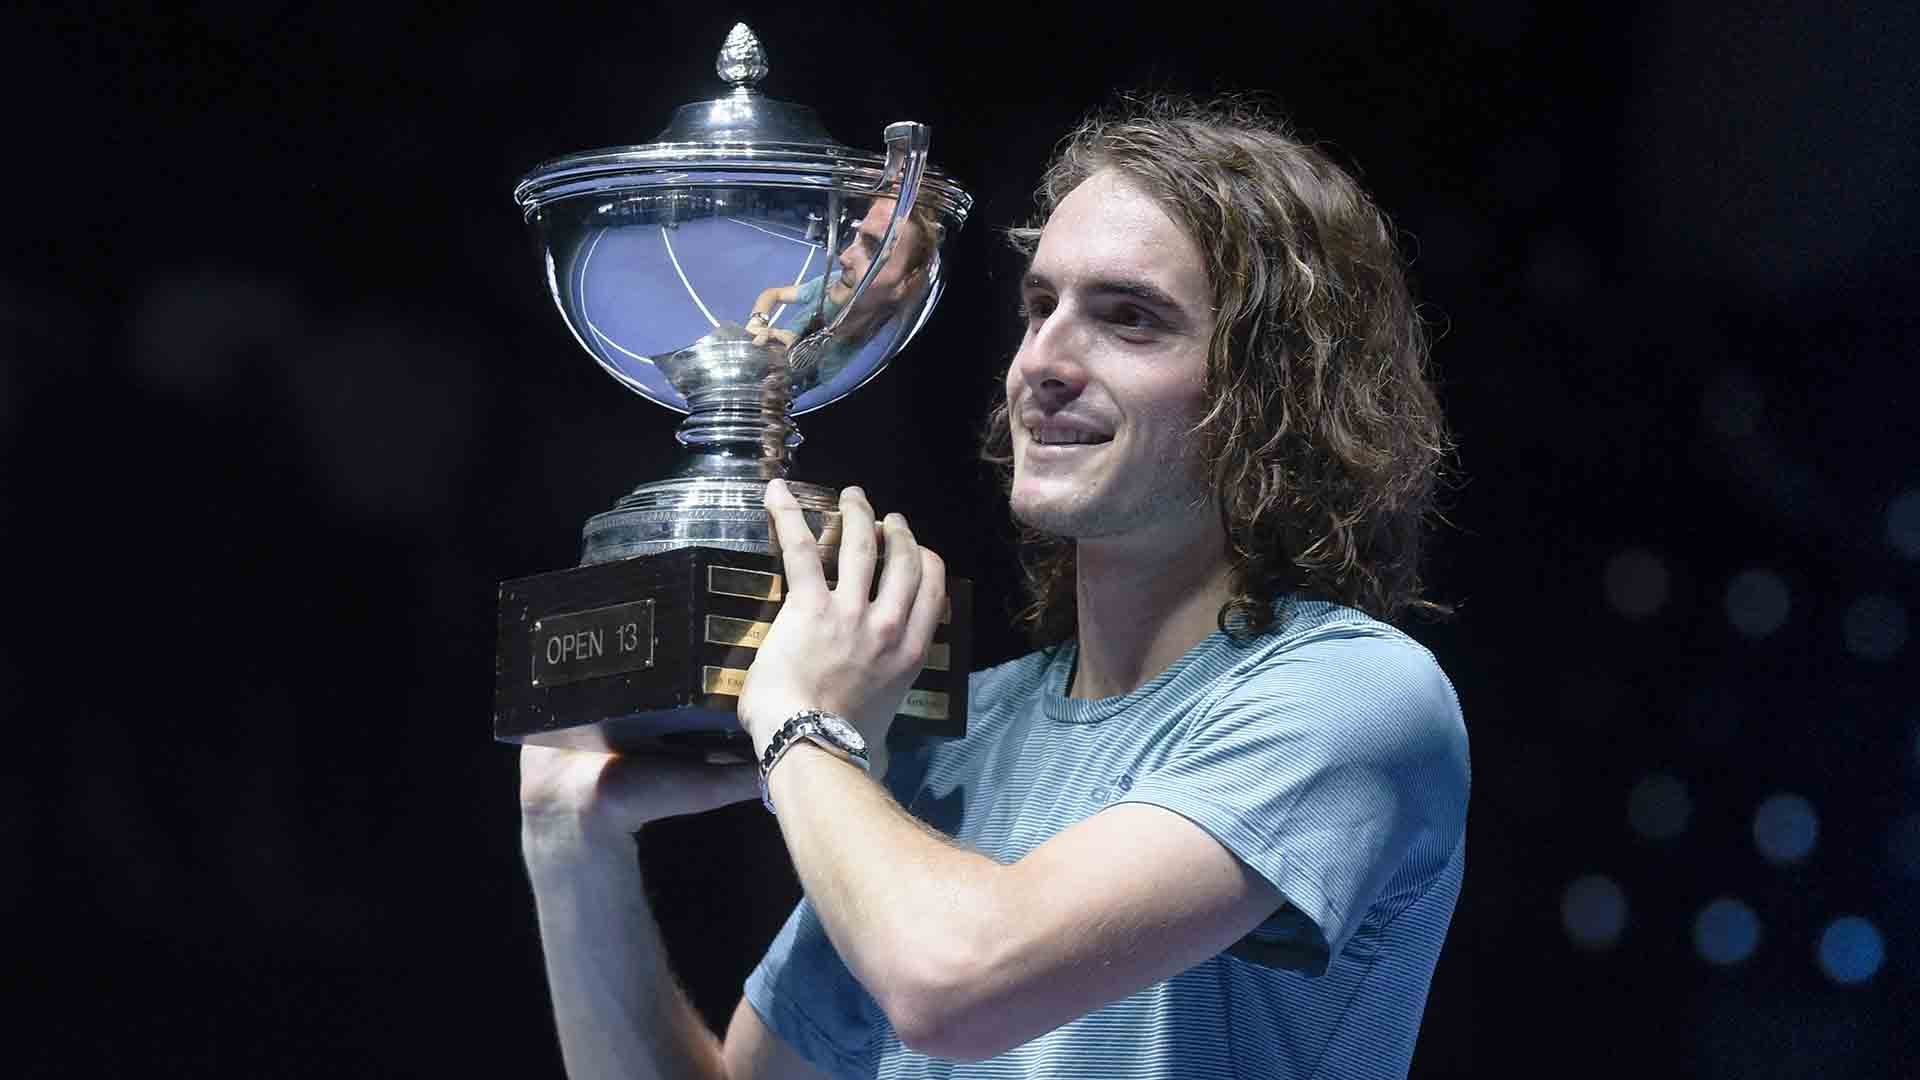 Stefanos Tsitsipas wins the Open 13 Provence title without dropping a set.